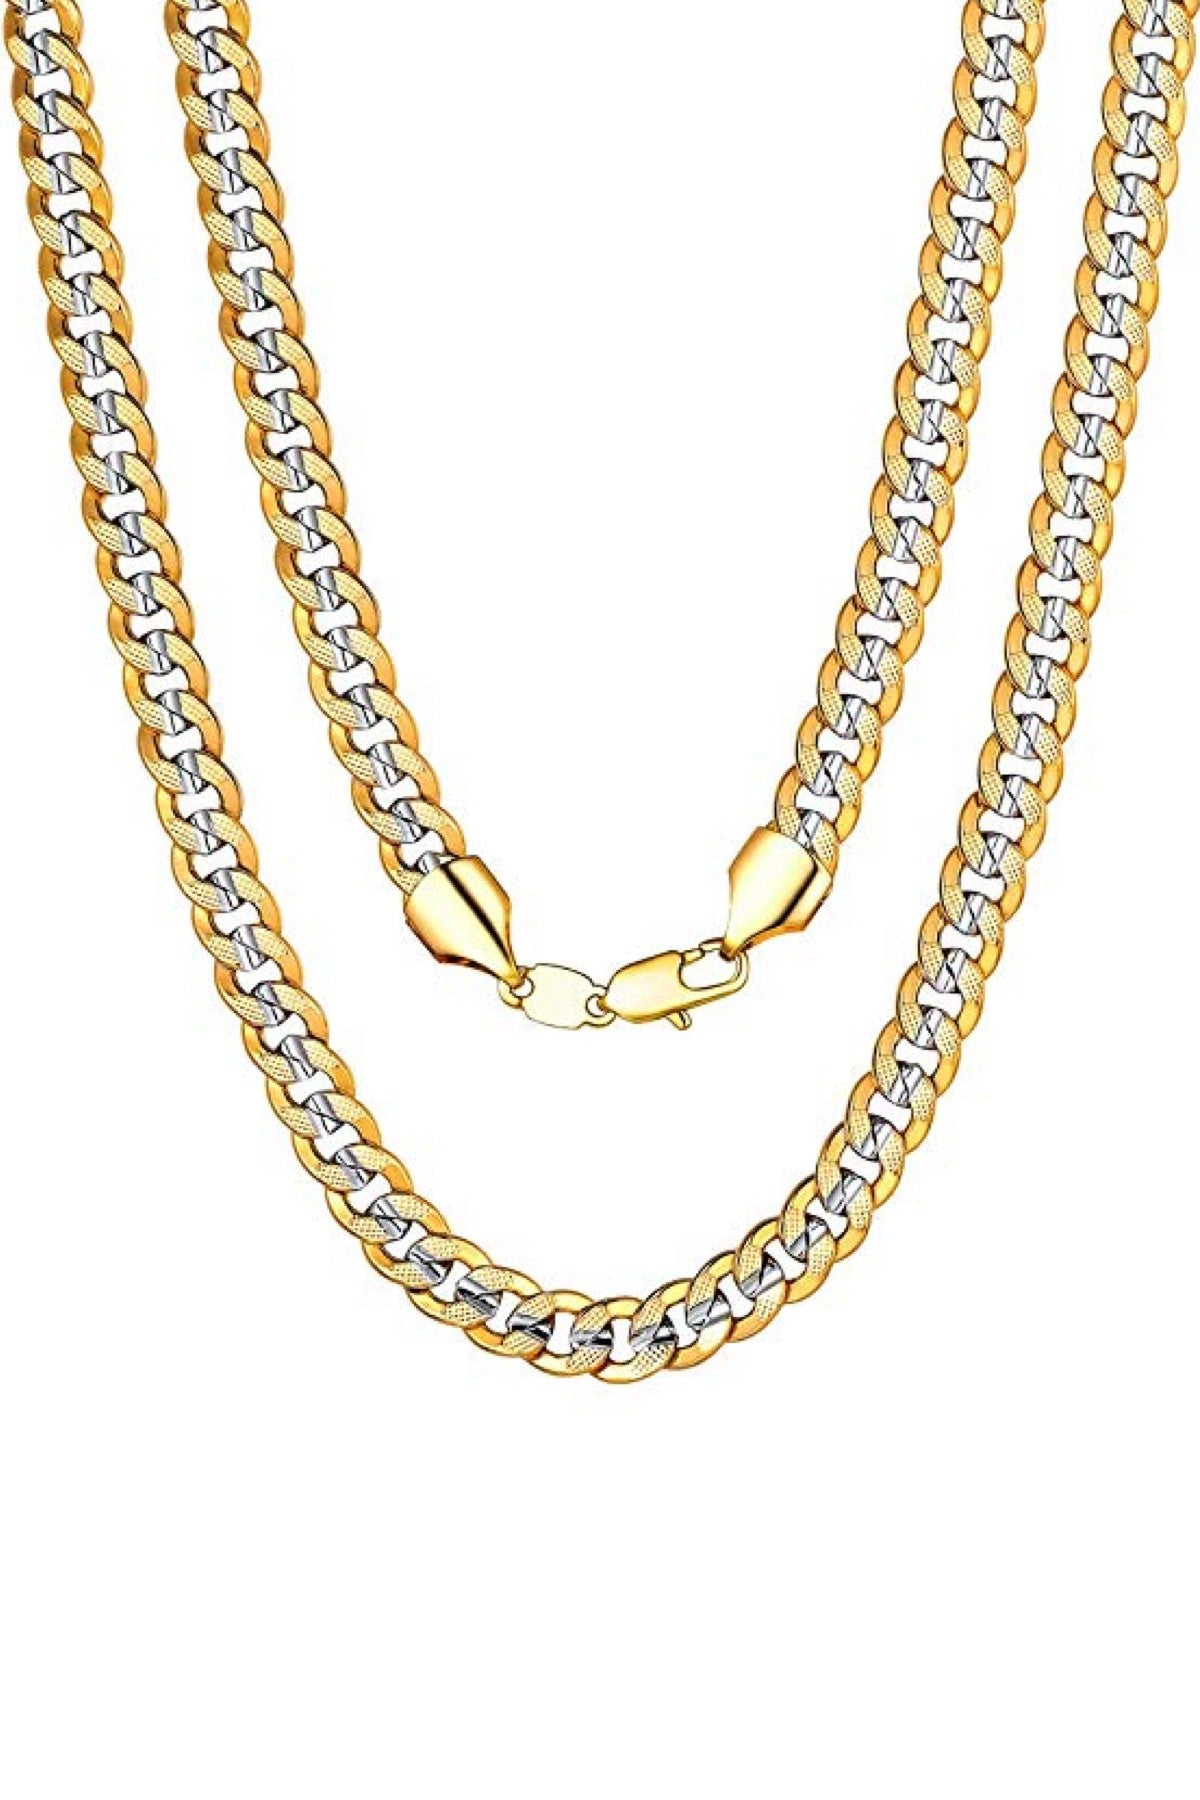 18k Gold & Silver Two Tone Necklace